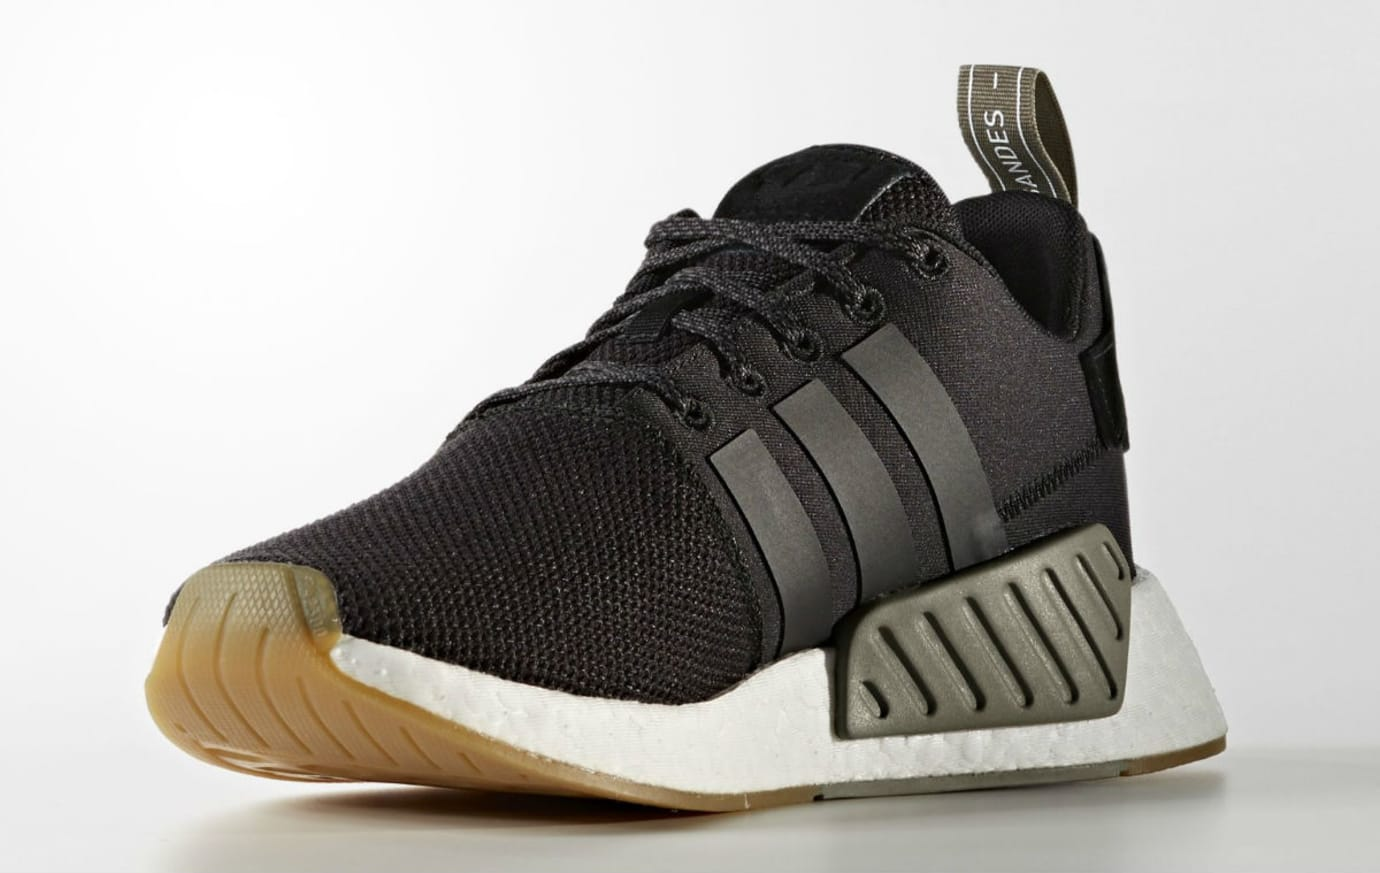 Adidas NMD_R2 Black Gum Release Date BY9917 | Sole Collector